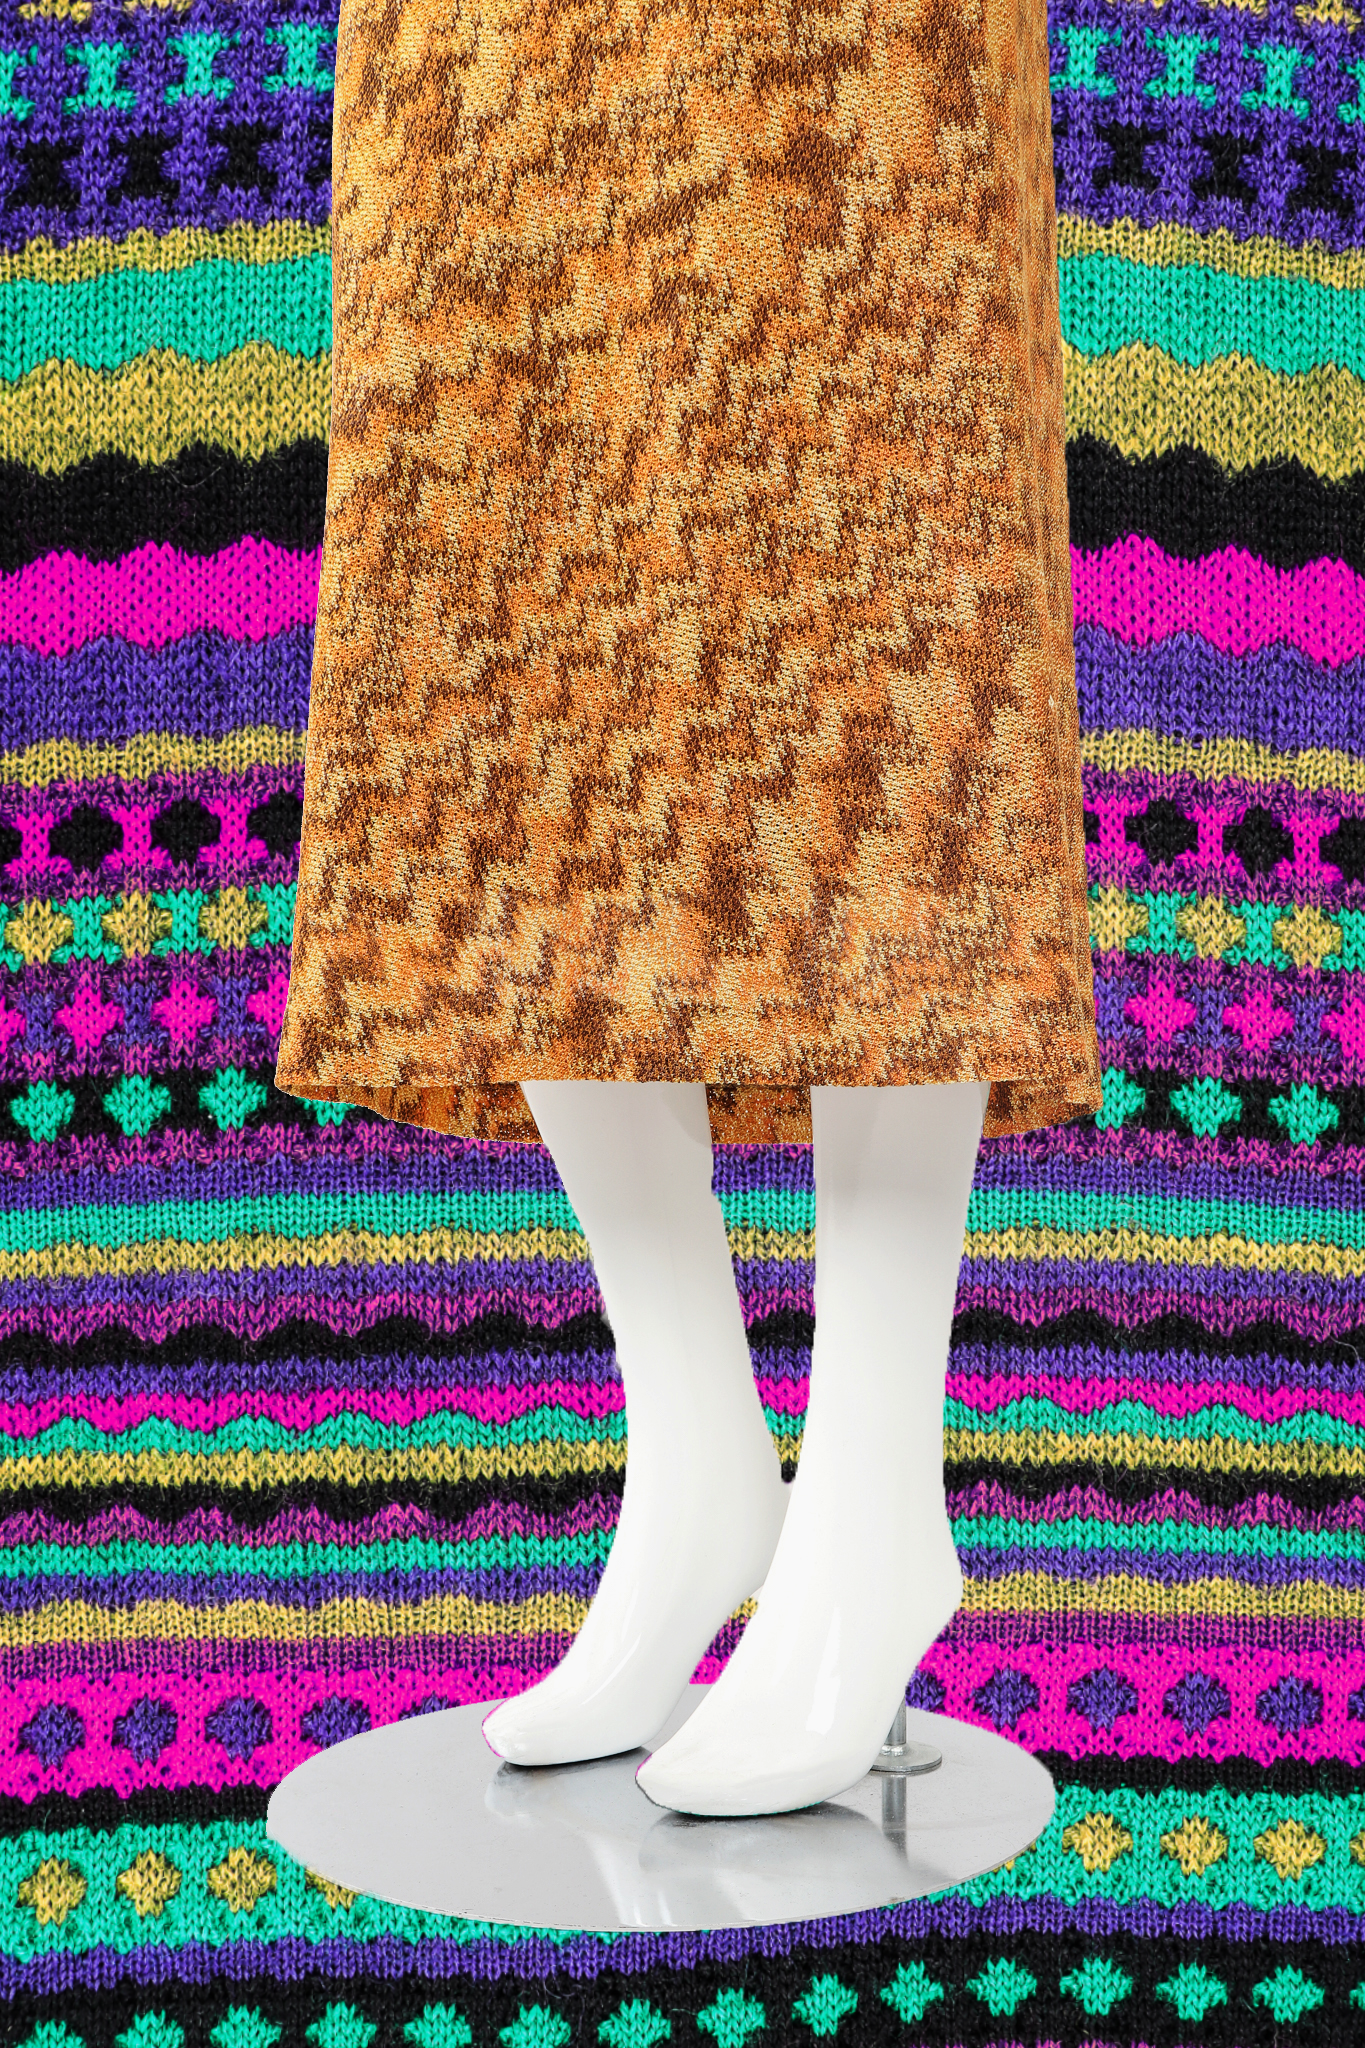 Recess DressCode Designer Consignment Vintage Missoni Knit Knitwear Sweater Weather Skirt Space Dye